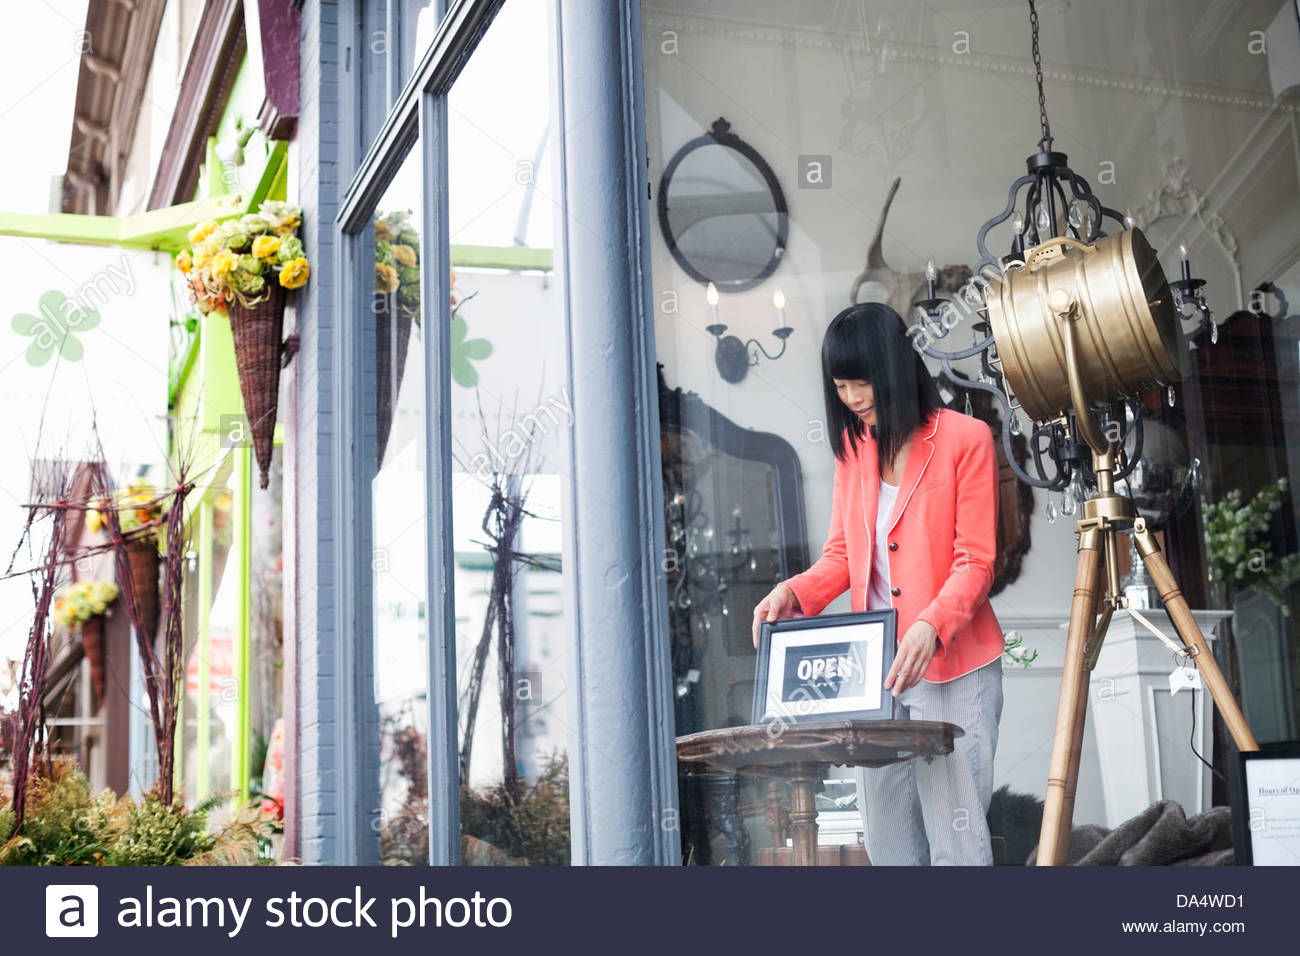 Female business owner displaying open sign in furniture store window - Stock Image